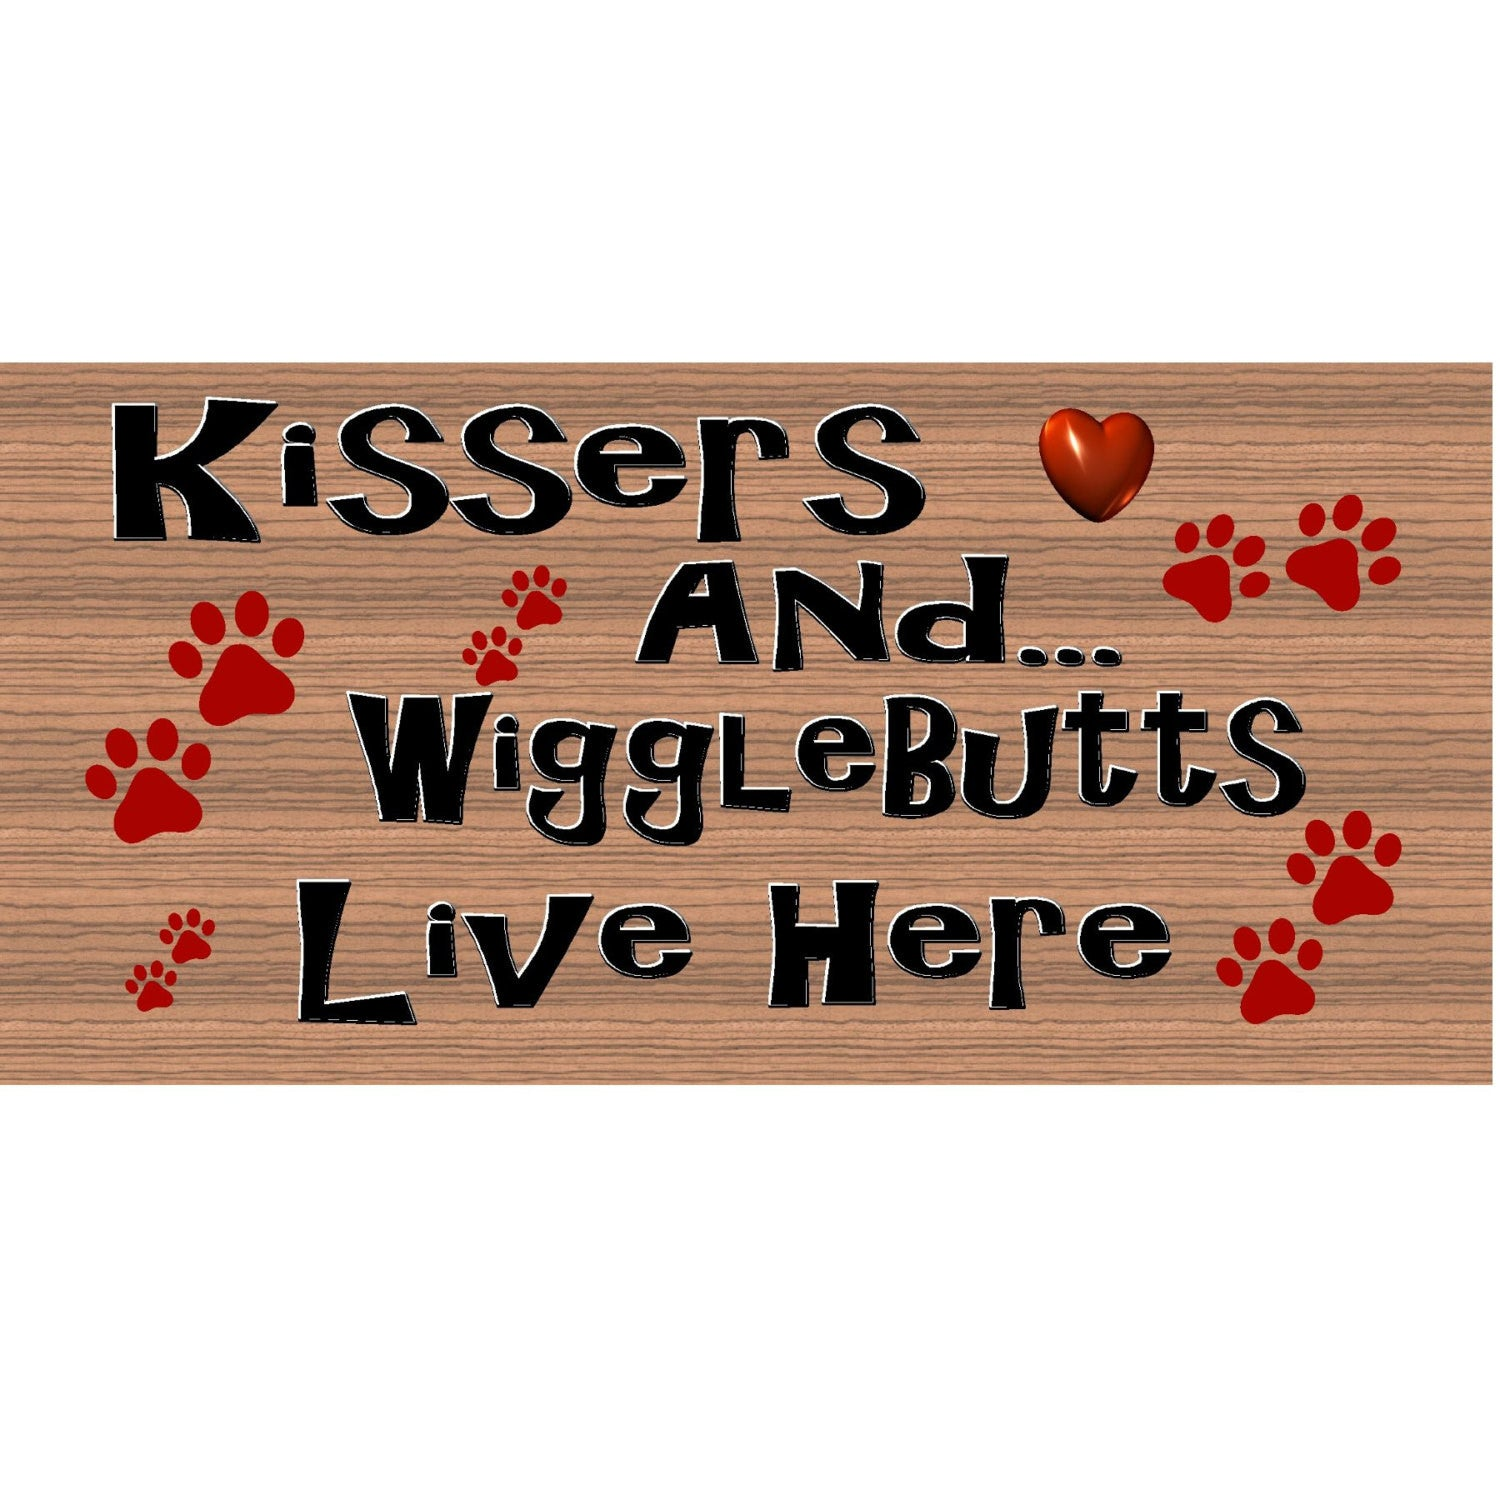 Dog Wood Signs - Kissers and WiggleButts Live Here GS 1960- Dog Plaque